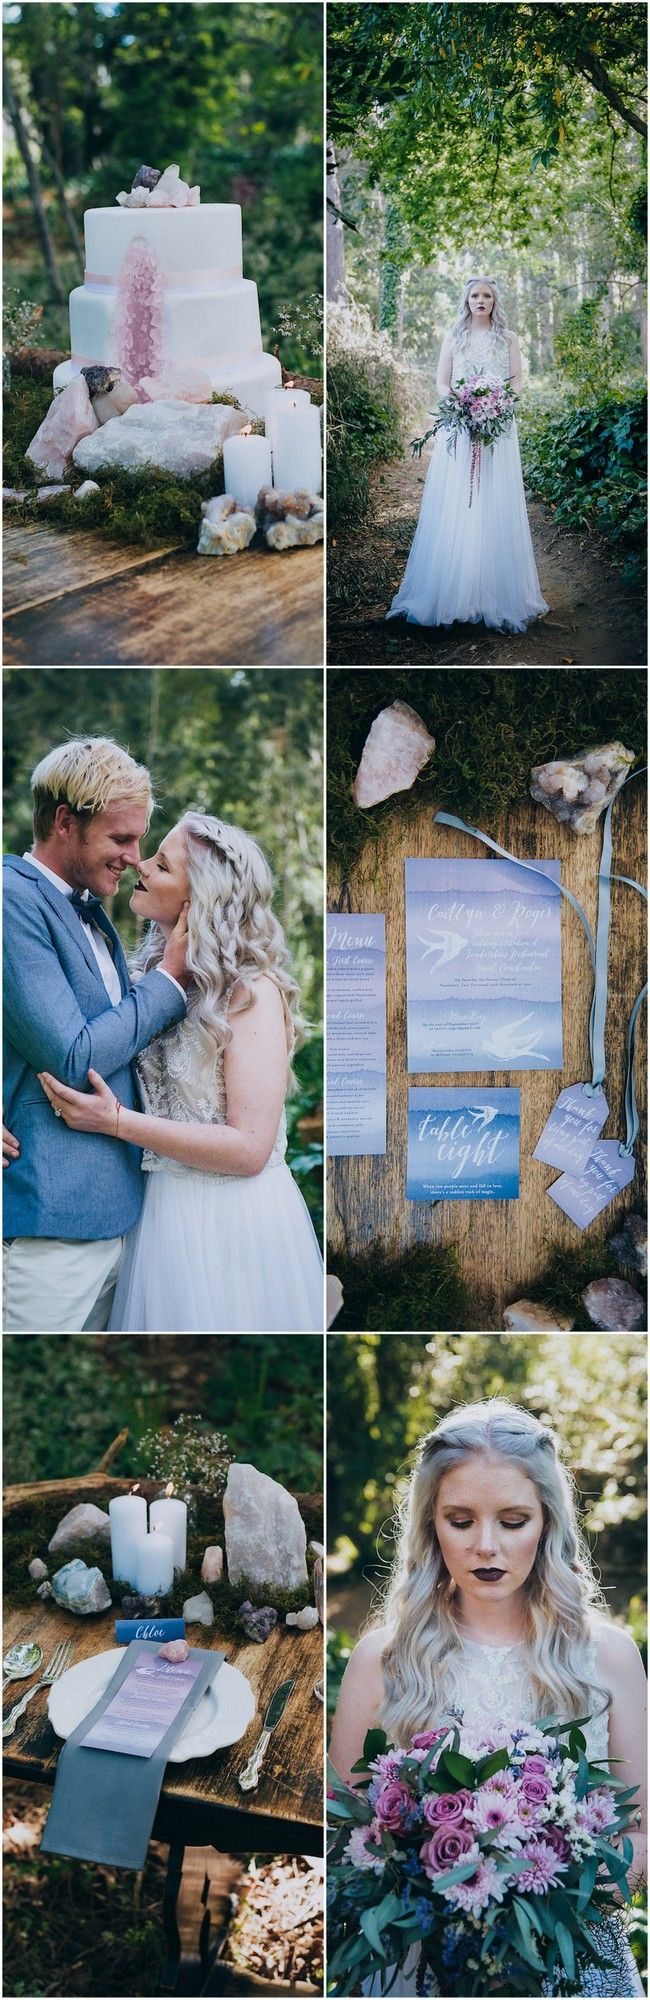 Eclectic Earth: Geode and Crystal Wedding Ideas: Celebrate mother nature's earthy beauty with geode and crystal wedding ideas. Rose quartz garlands, geodes, foraged wood & moss create mystique + magic in the forest.http://www.confettidaydreams.com/geode-and-crystal-wedding-ideas/ via @confettidaydreams Styling: HAPPINEST Photography Lauren Pretorius